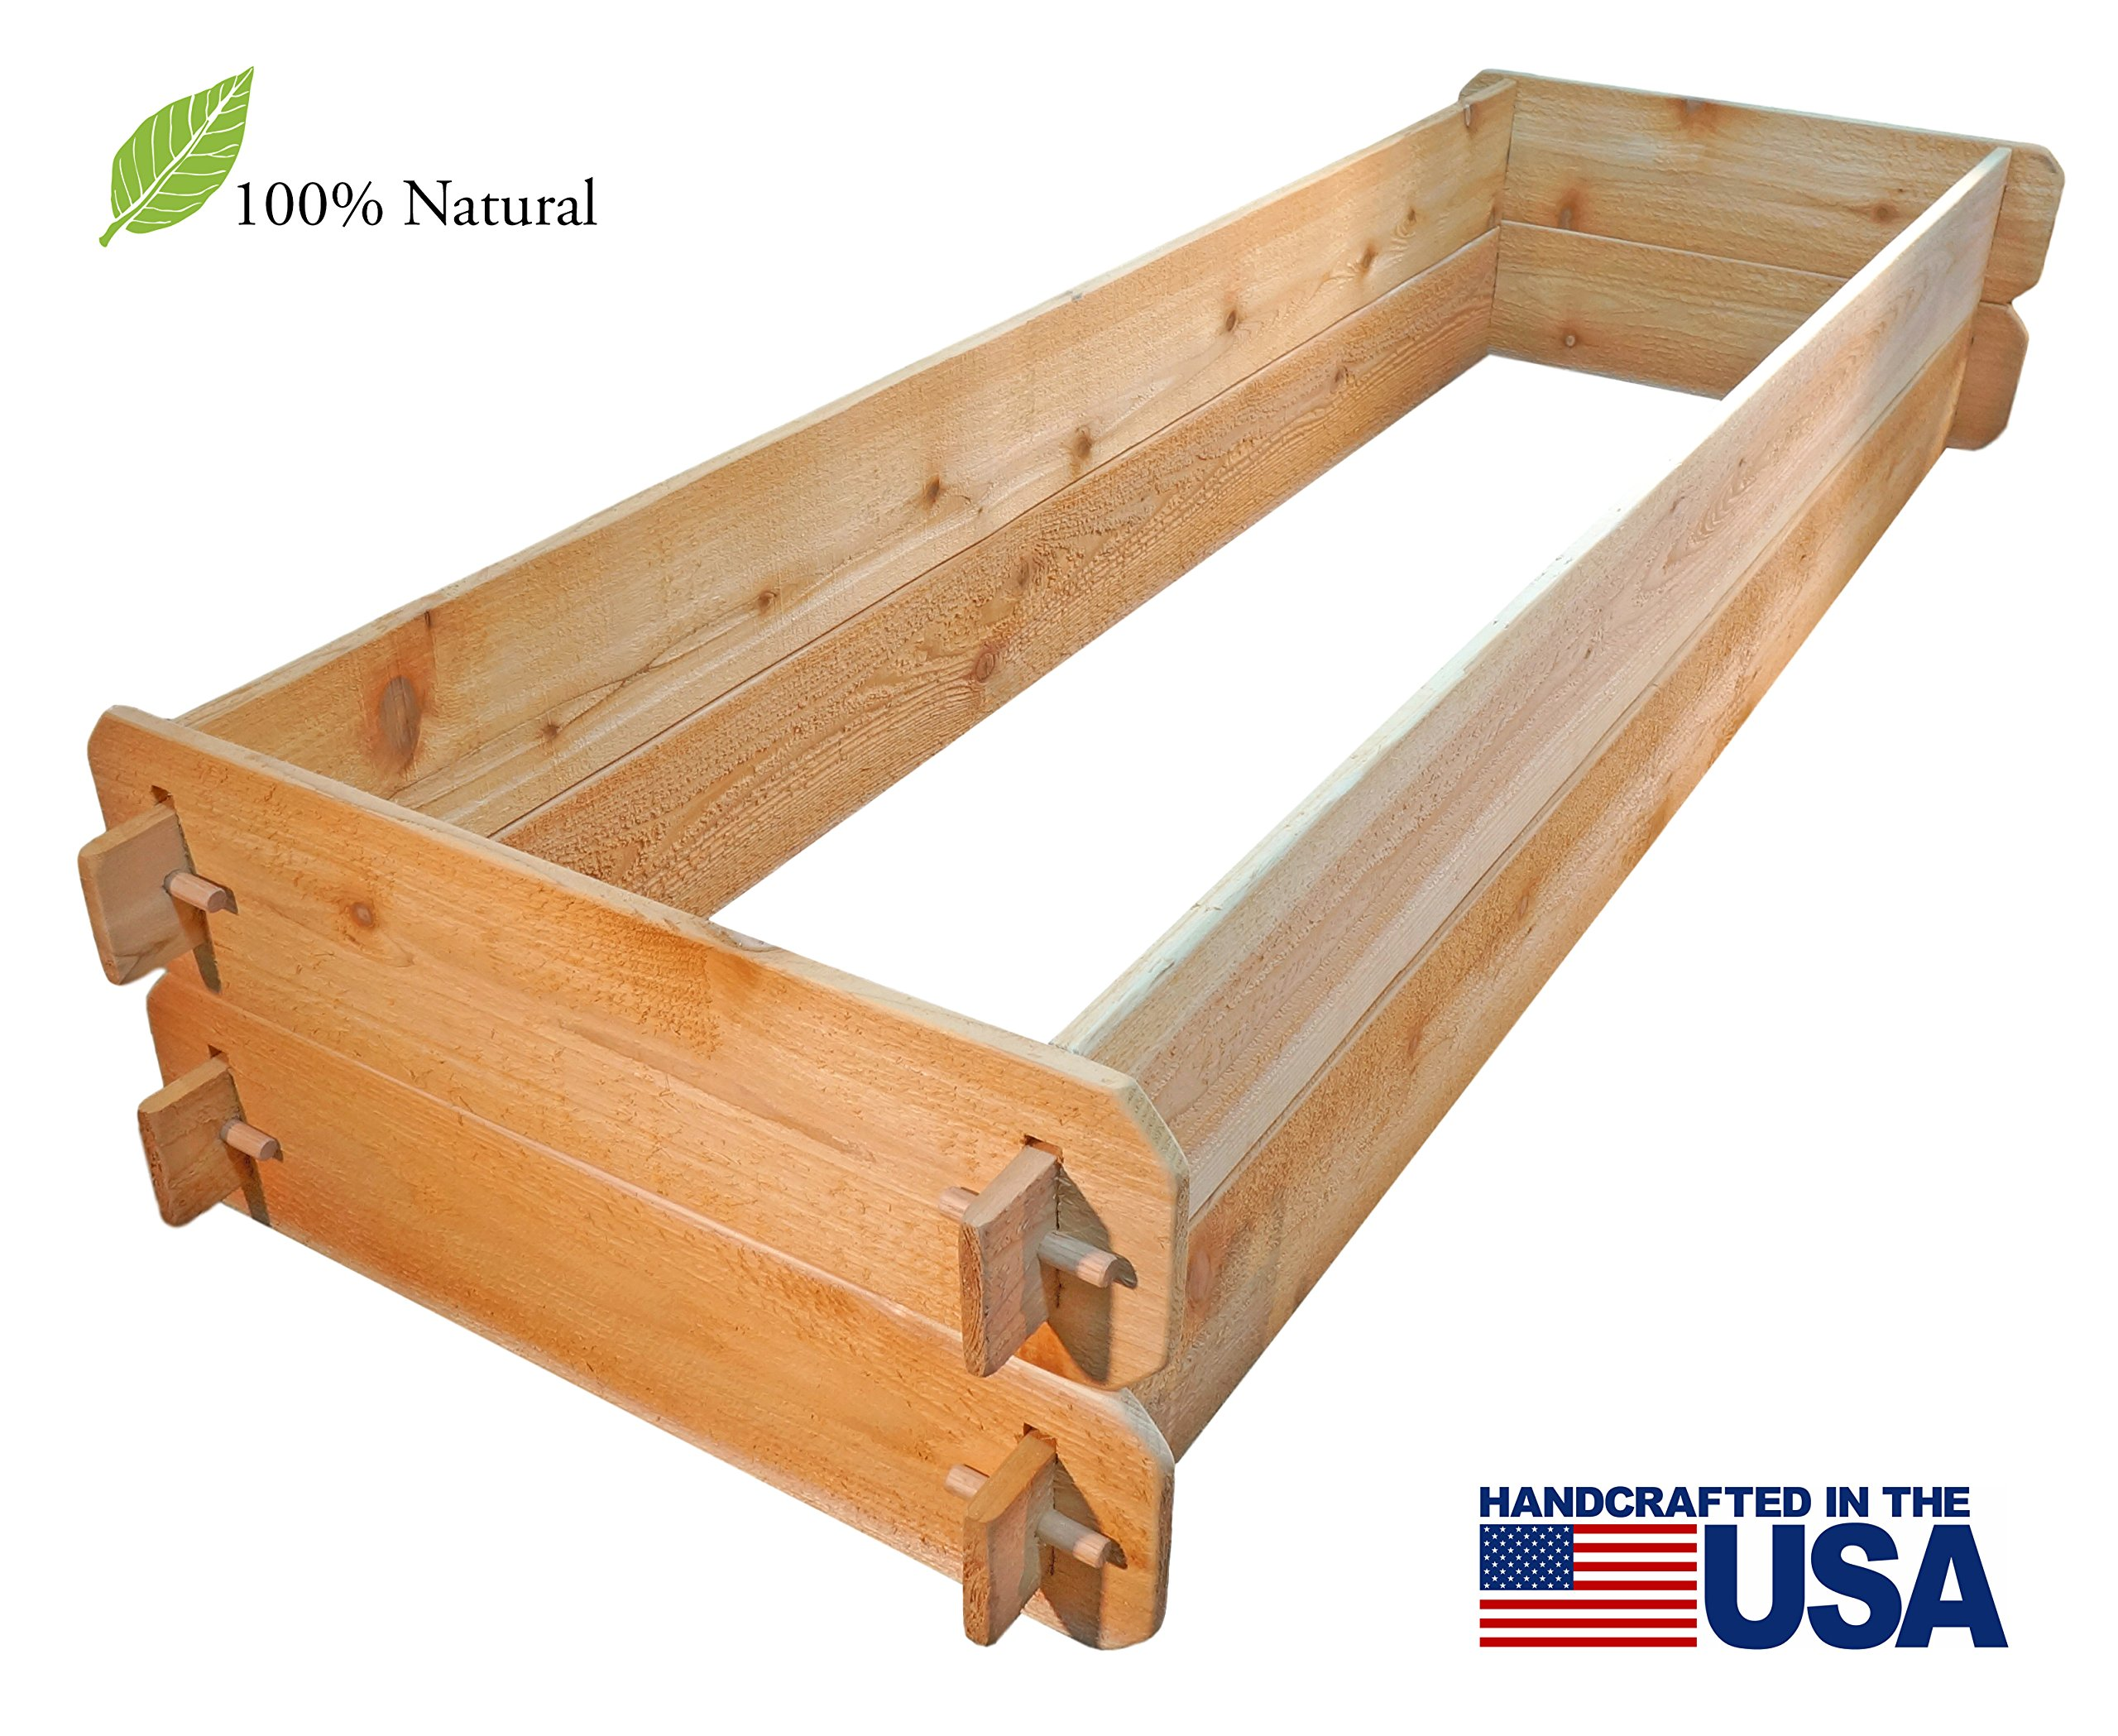 """Timberlane Gardens Raised Bed Kit Double Deep (Two) Western Red Cedar with Mortise and Tenon Joinery, 24"""" W x 72"""" L 5 Raised Garden Bed Kit Proudly Made in Homer Glen, Illinois USA. Constructed of Select Western Red Cedar. Aromatic and Naturally Insect & Rot Resistant. Handcrafted Mortise & Tenon Joinery. The Strongest Corner Joints Available."""